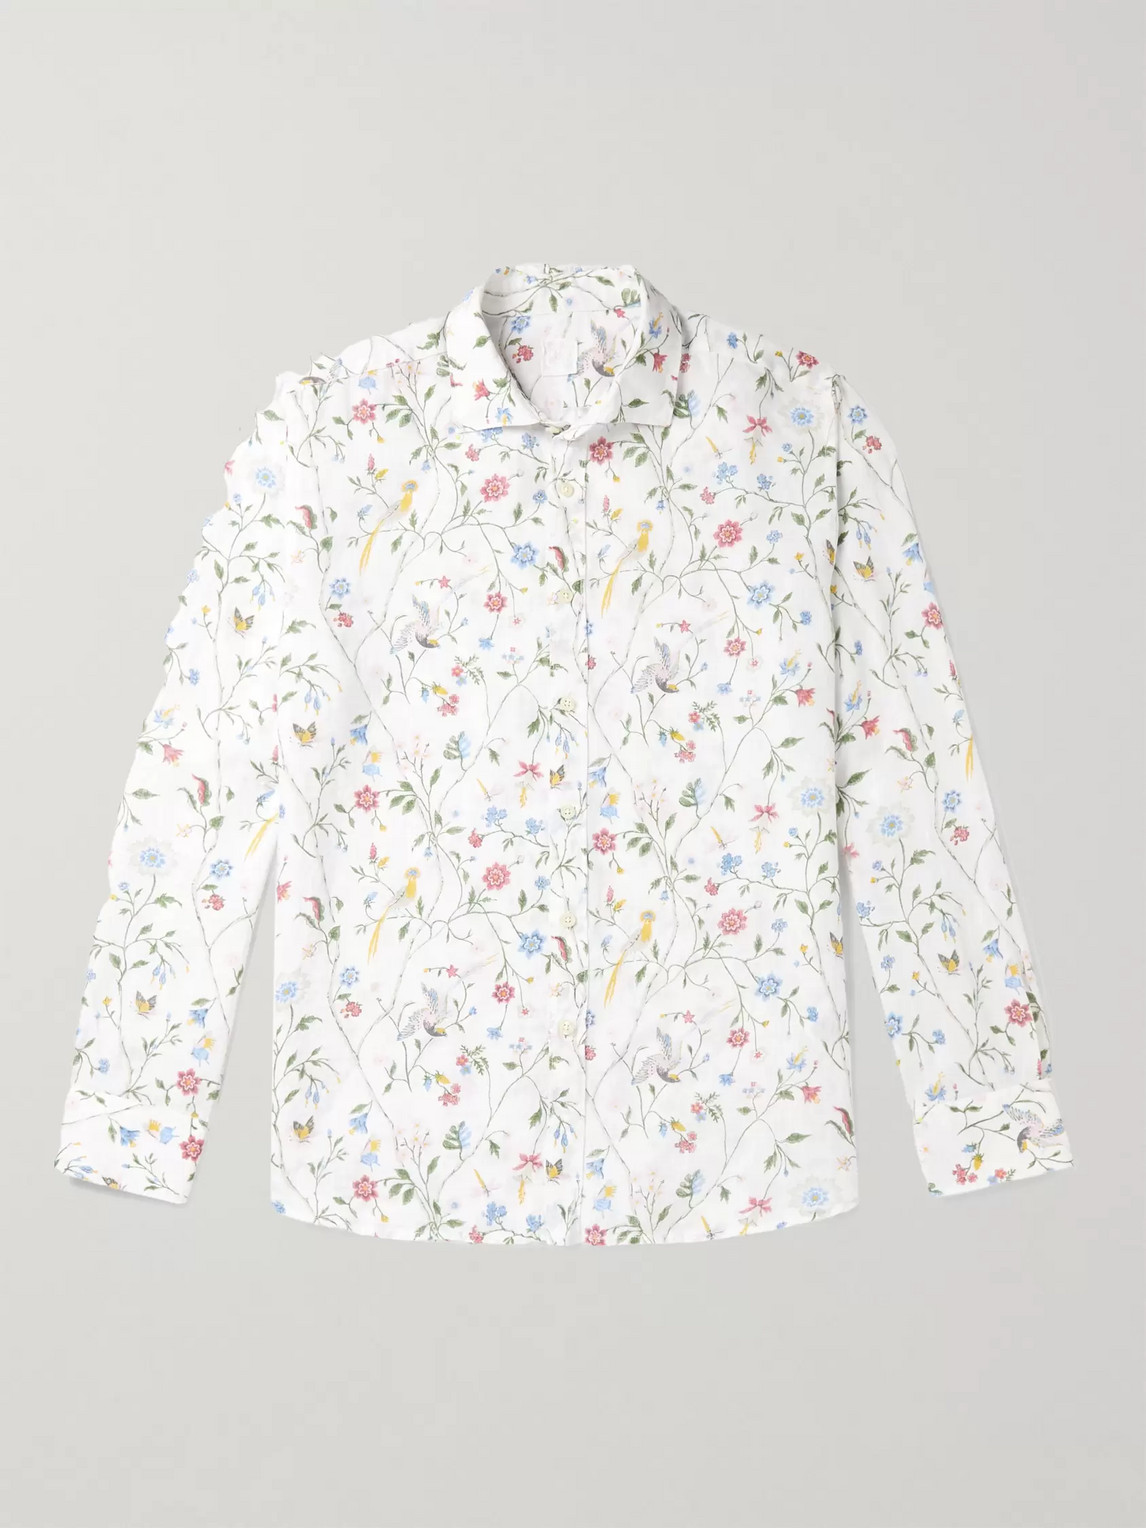 120% Printed Linen Shirt In White